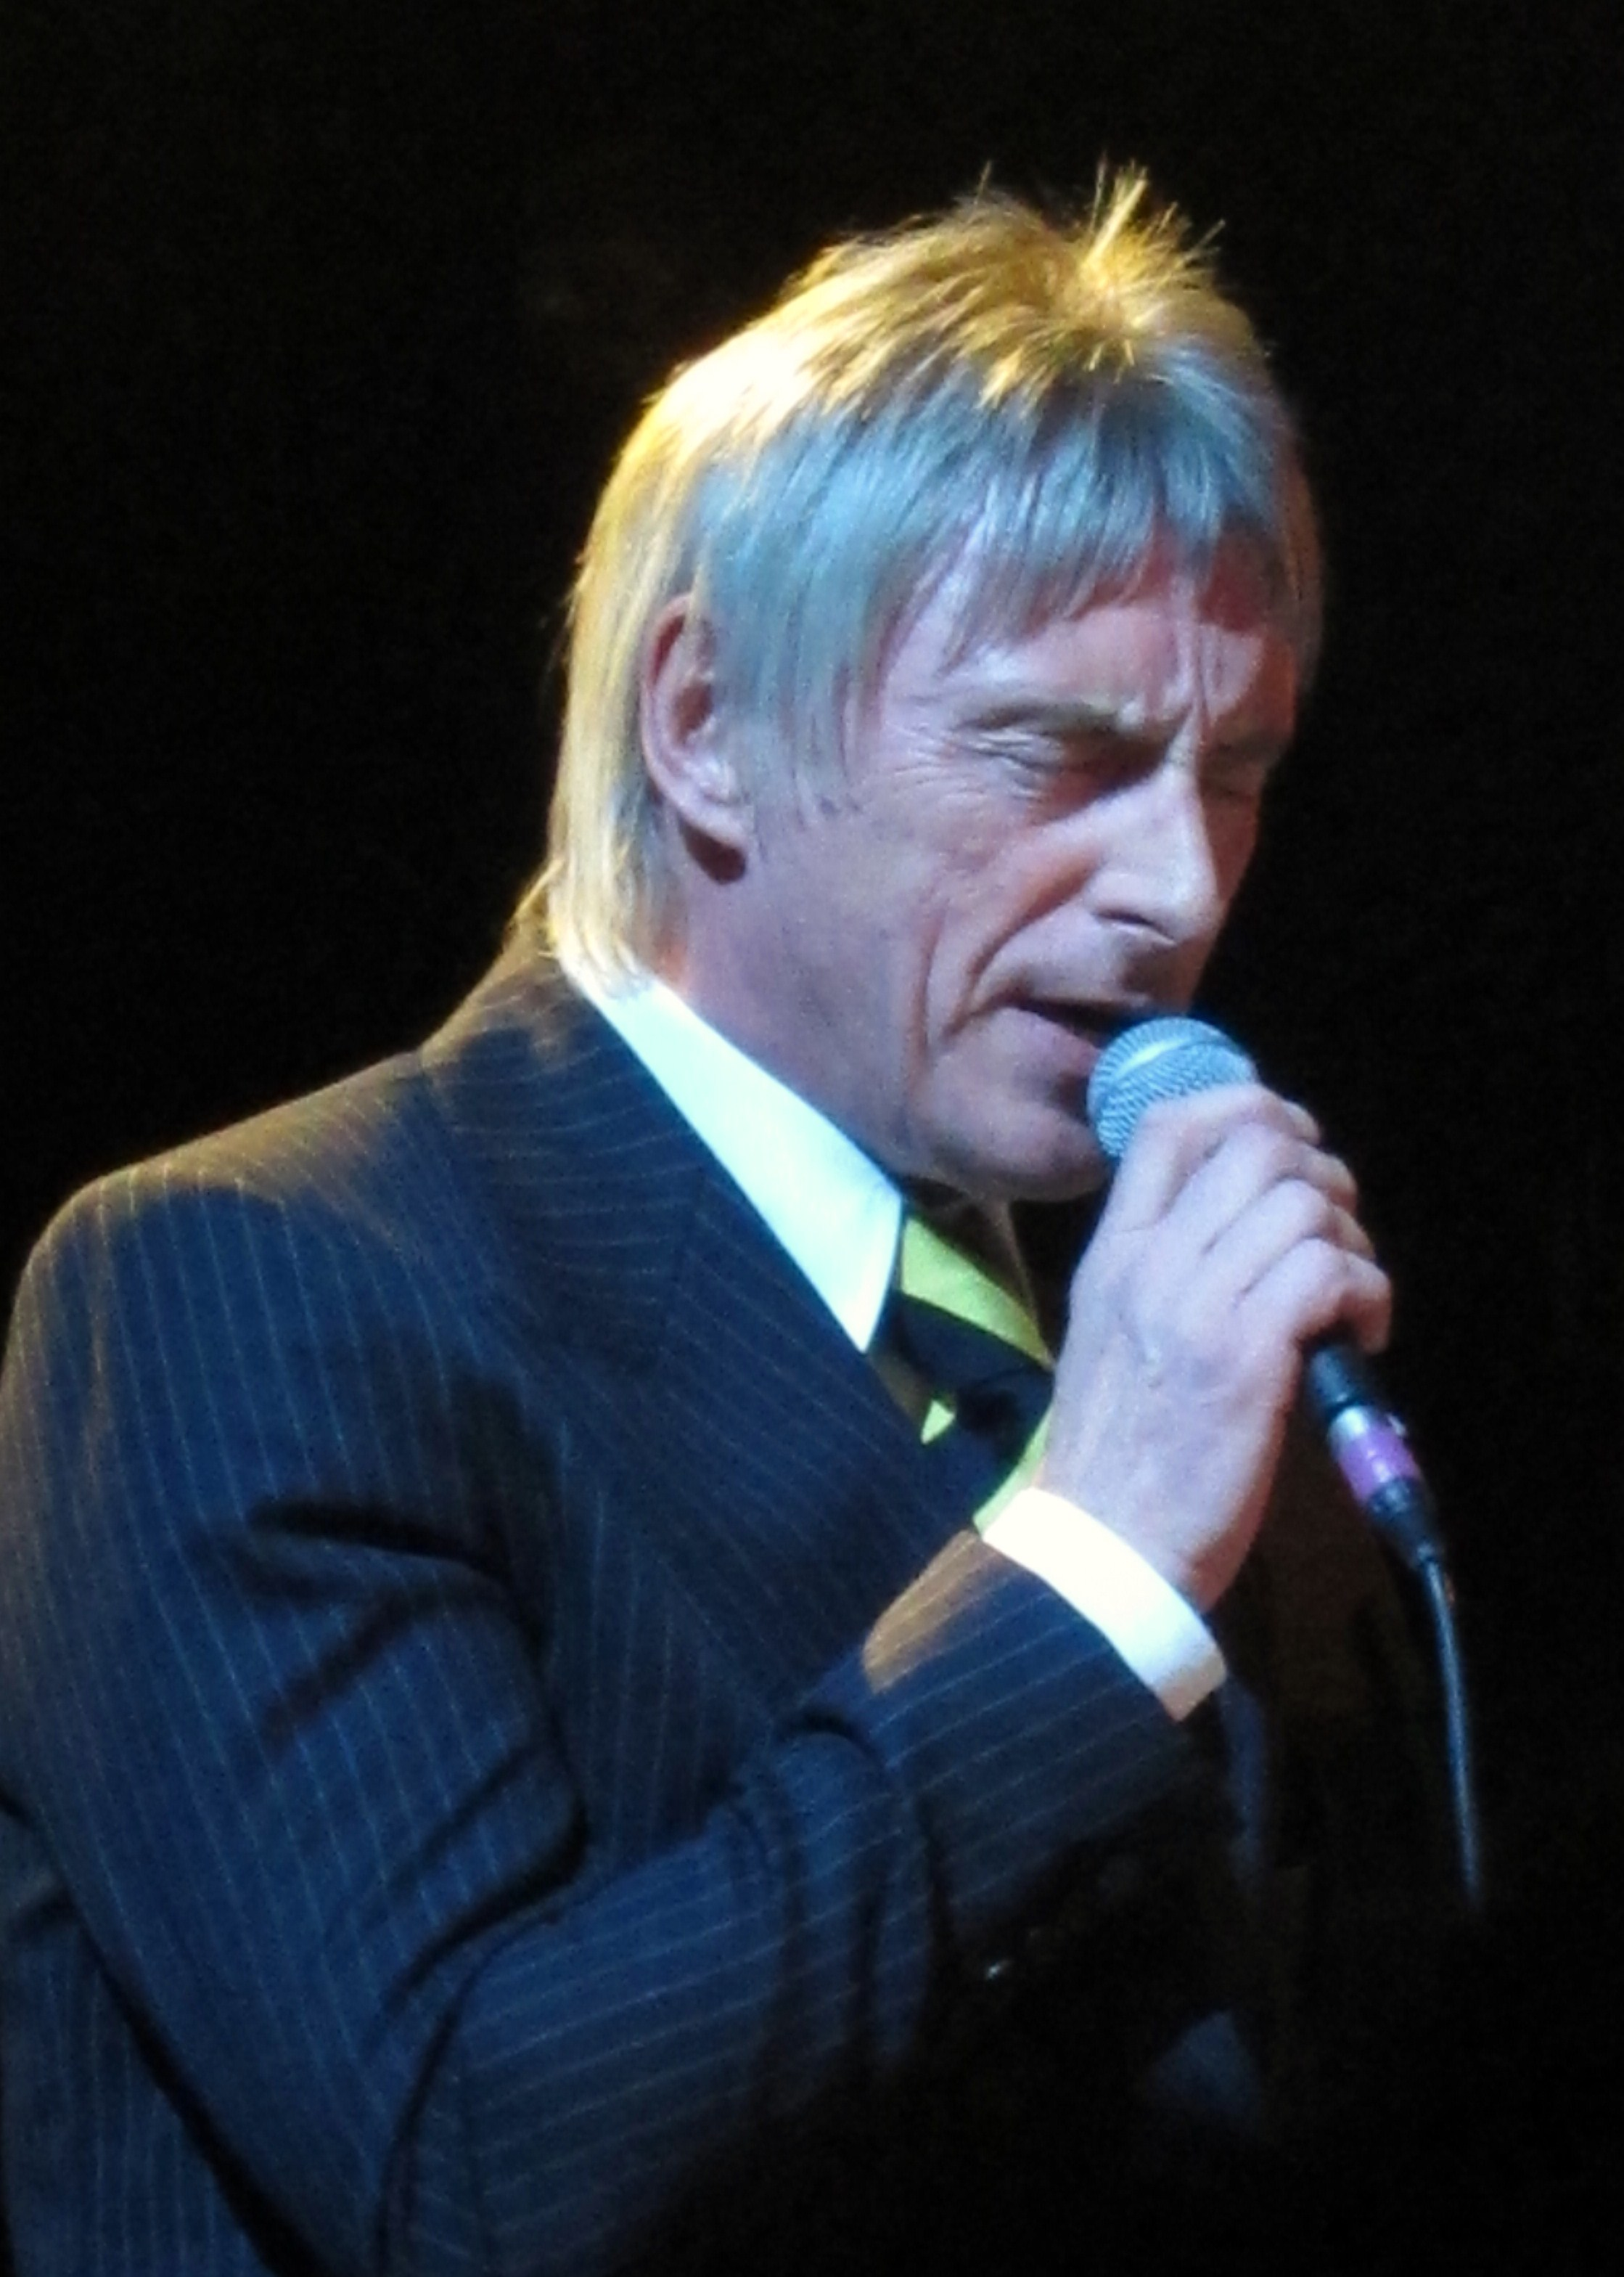 Paul Weller Live At The Camden Roundhouse 2012 Every Record Tells